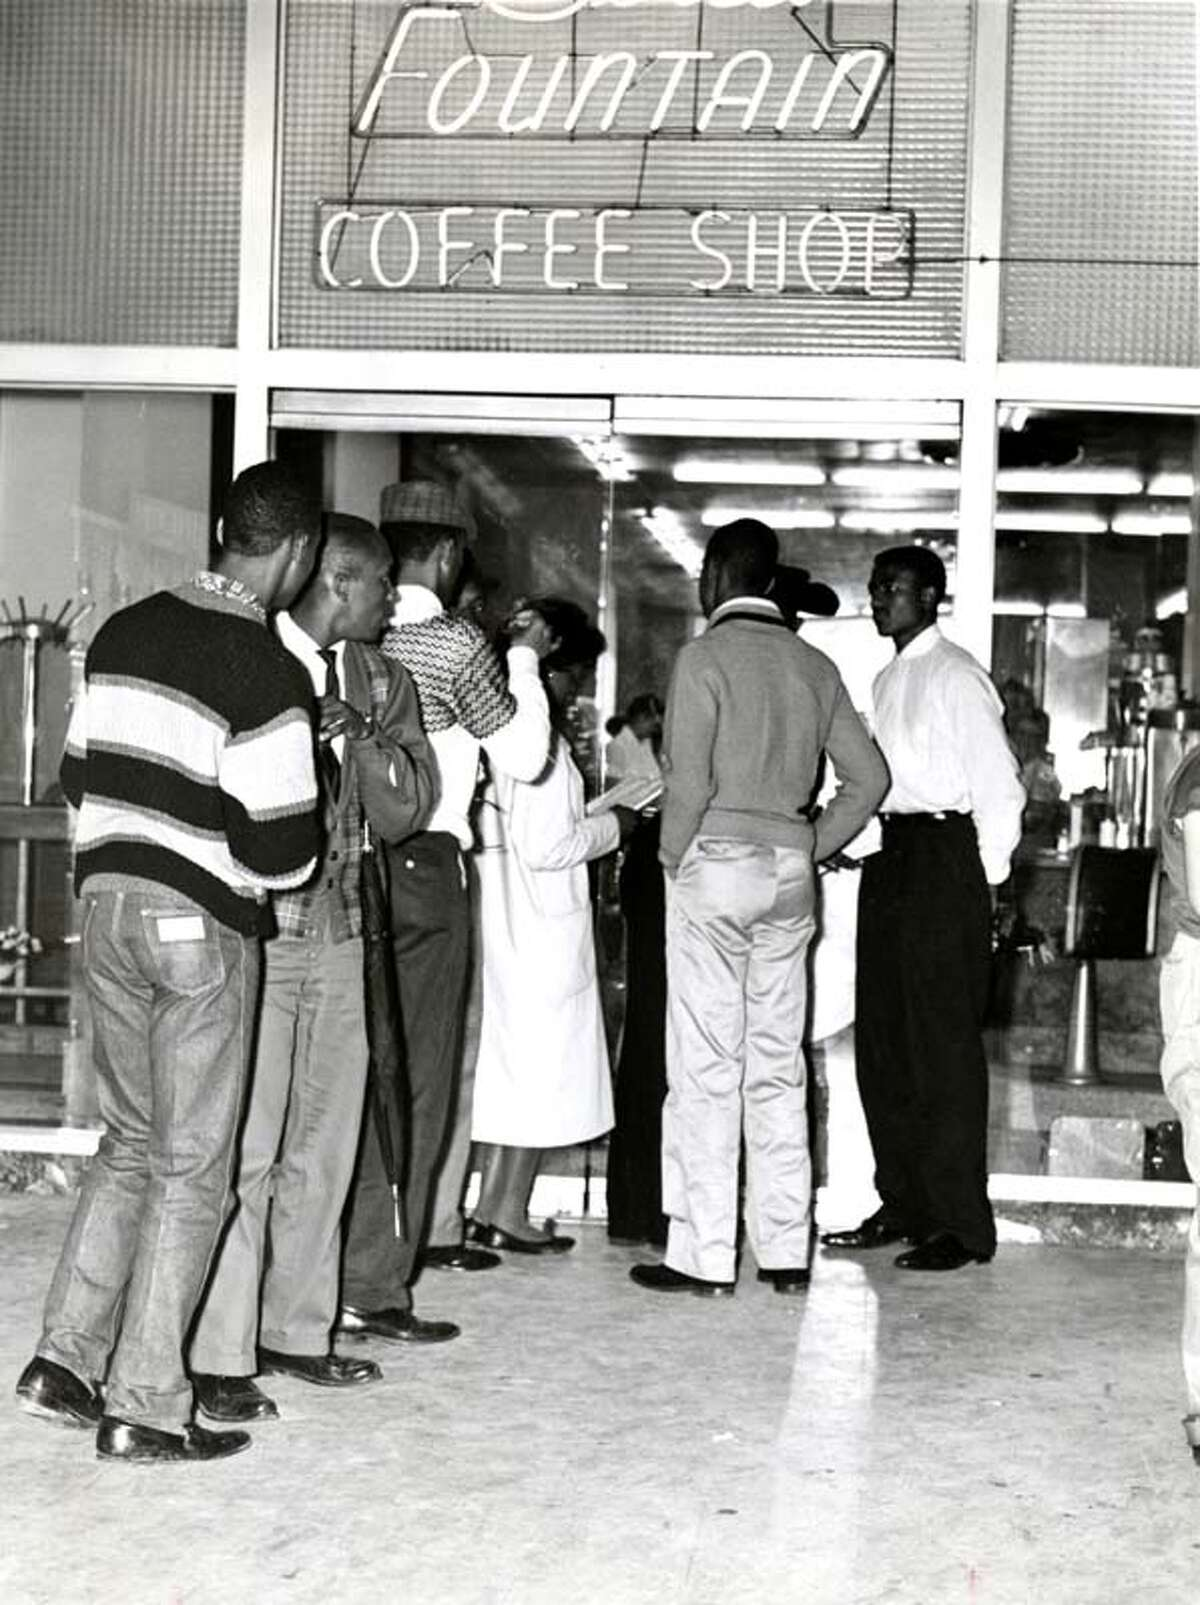 Demonstrators participate in a sit-in at the Union Station coffee shop in Houston in February 1961. Twelve were arrested.